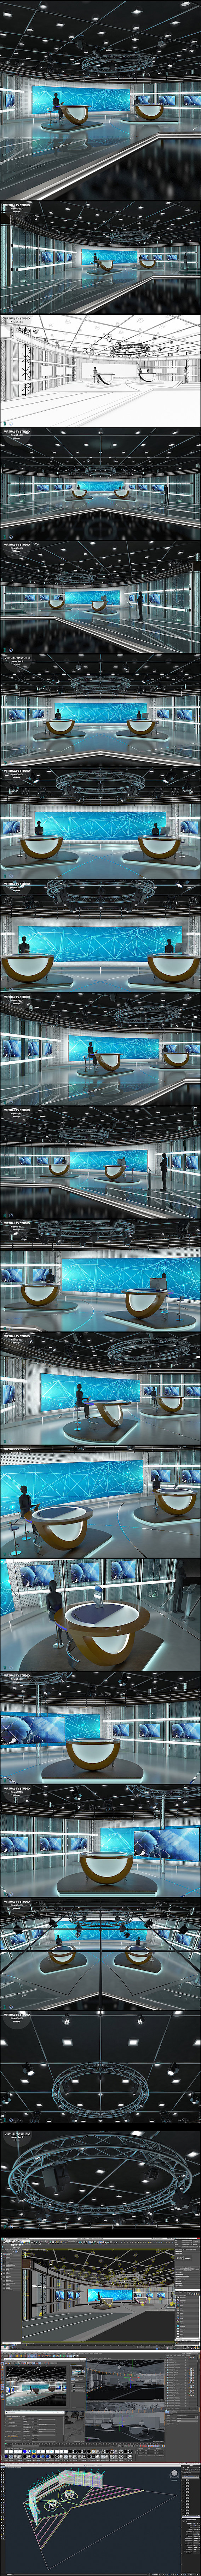 Virtual TV Studio News Set 3 - 3D Model Designs